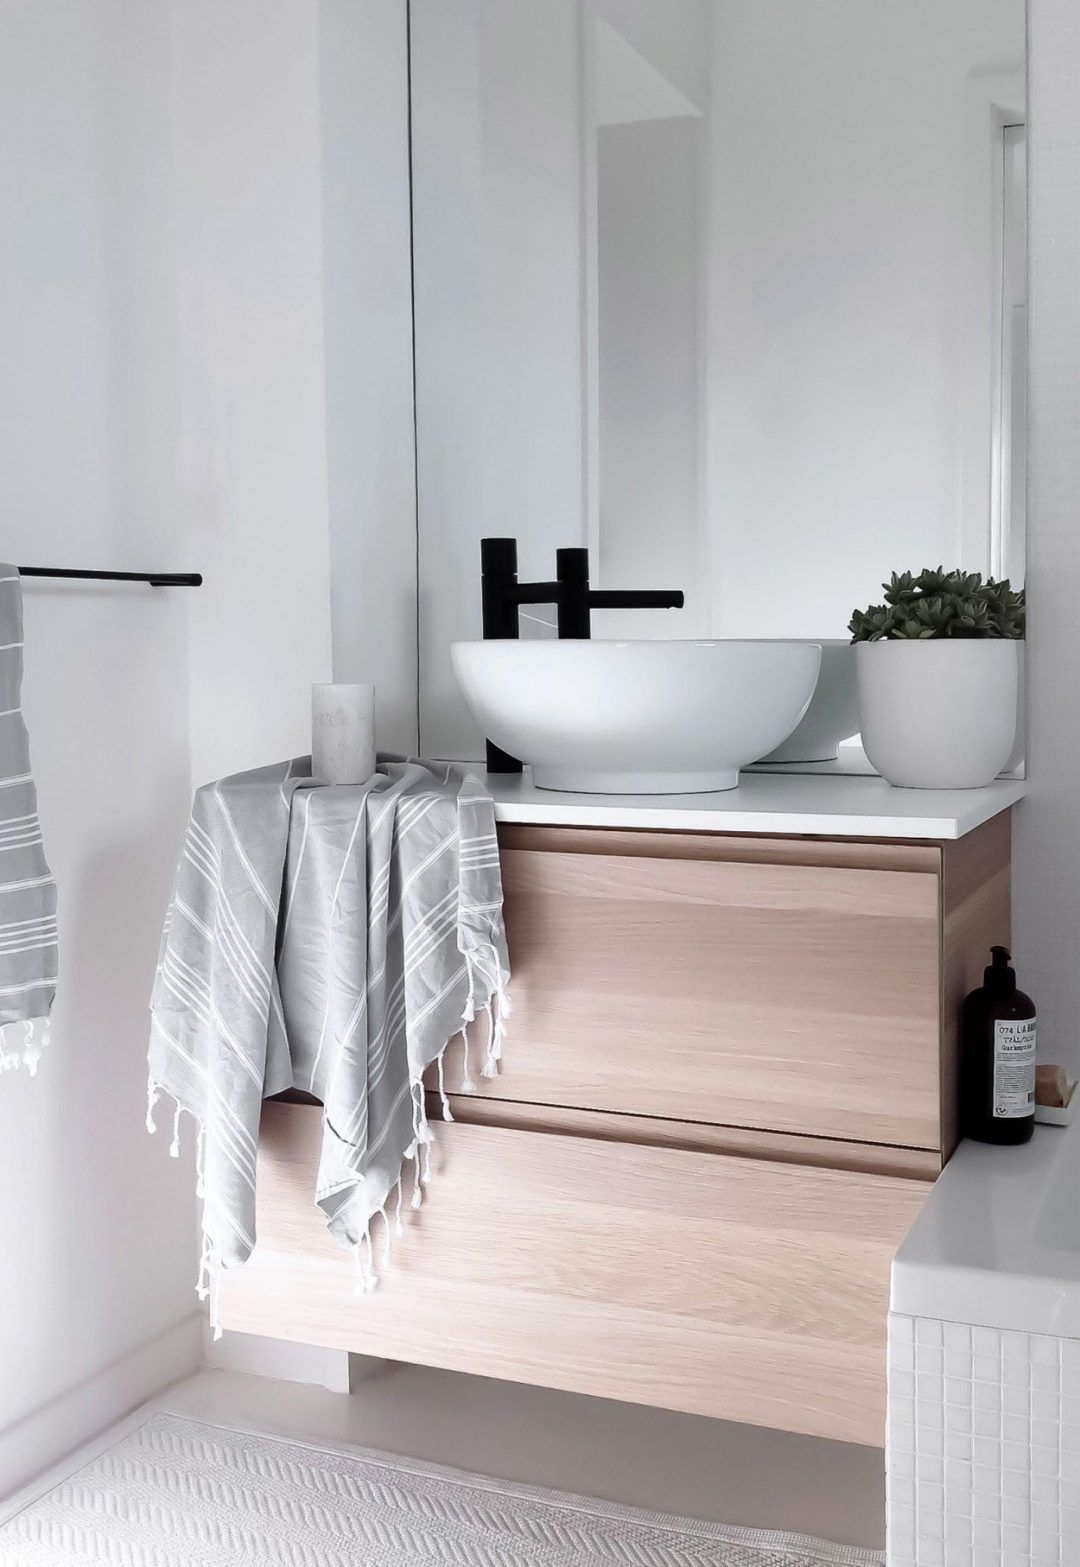 25 Tranquil Scandinavian Bathroom Decor To Get Rid Of Daily Stress - N12